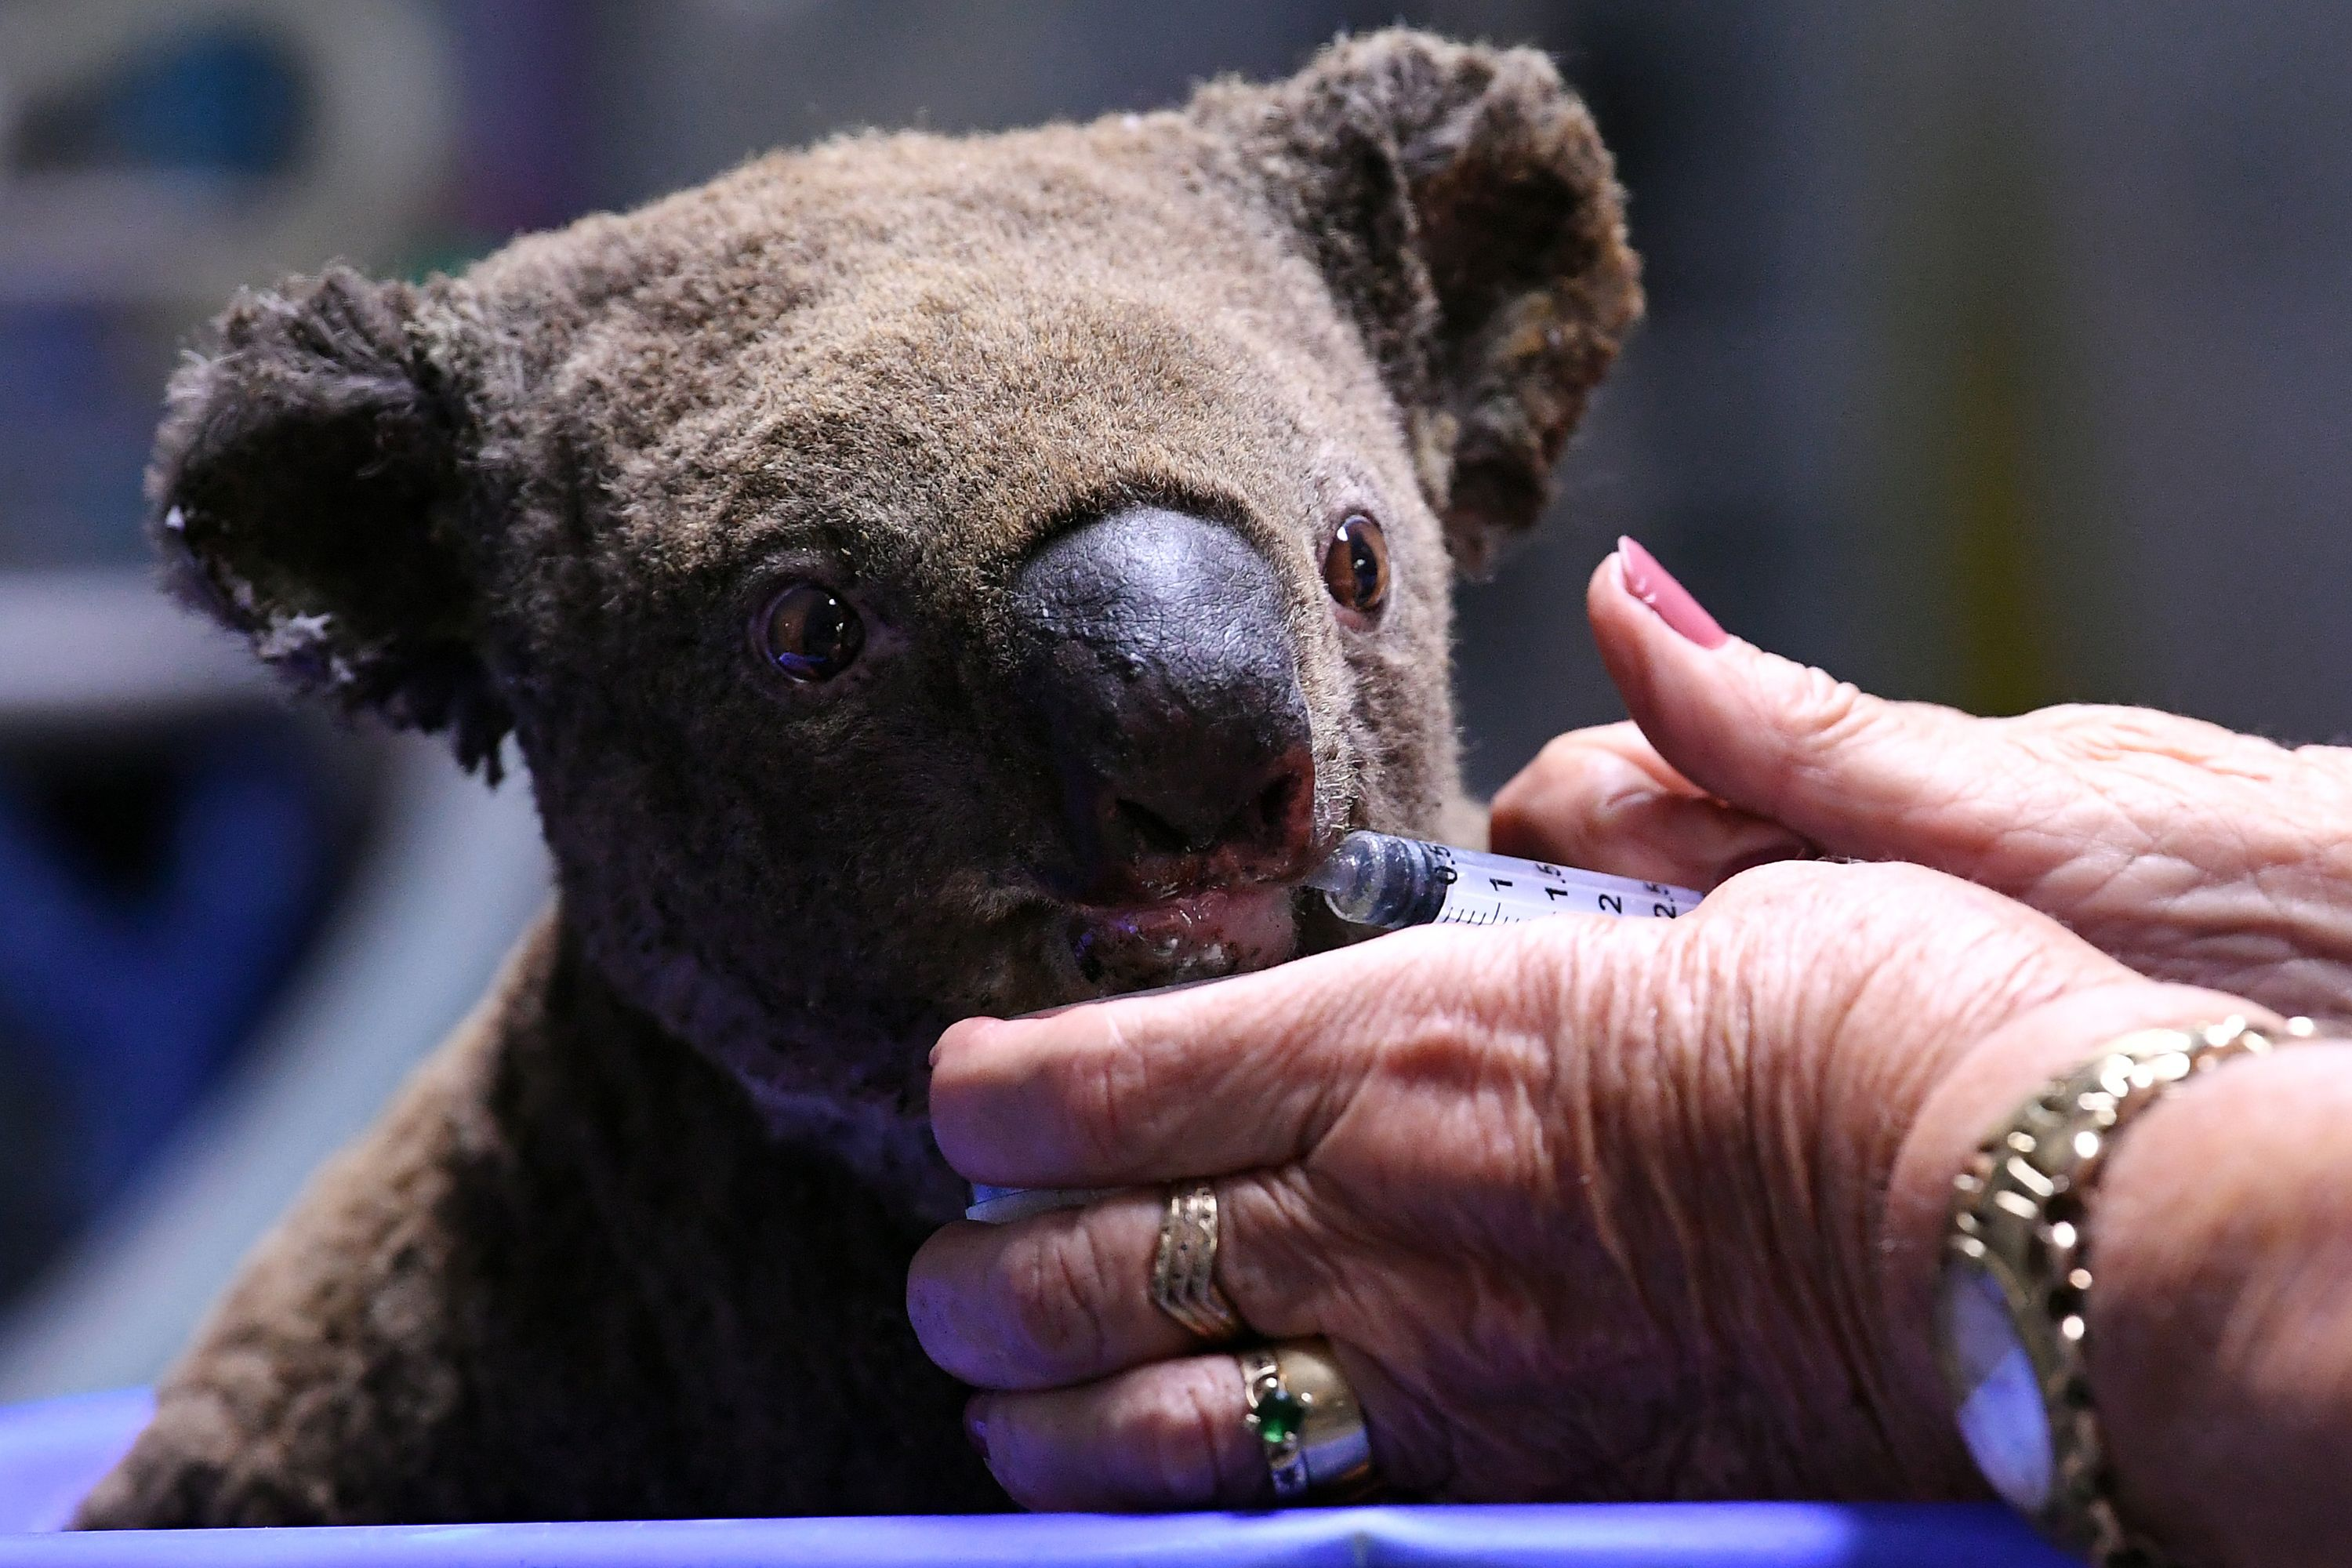 Koalas Were Already On The Brink In Australia Bushfires Have Killed 1 000 In 2 Months Experts Say Time